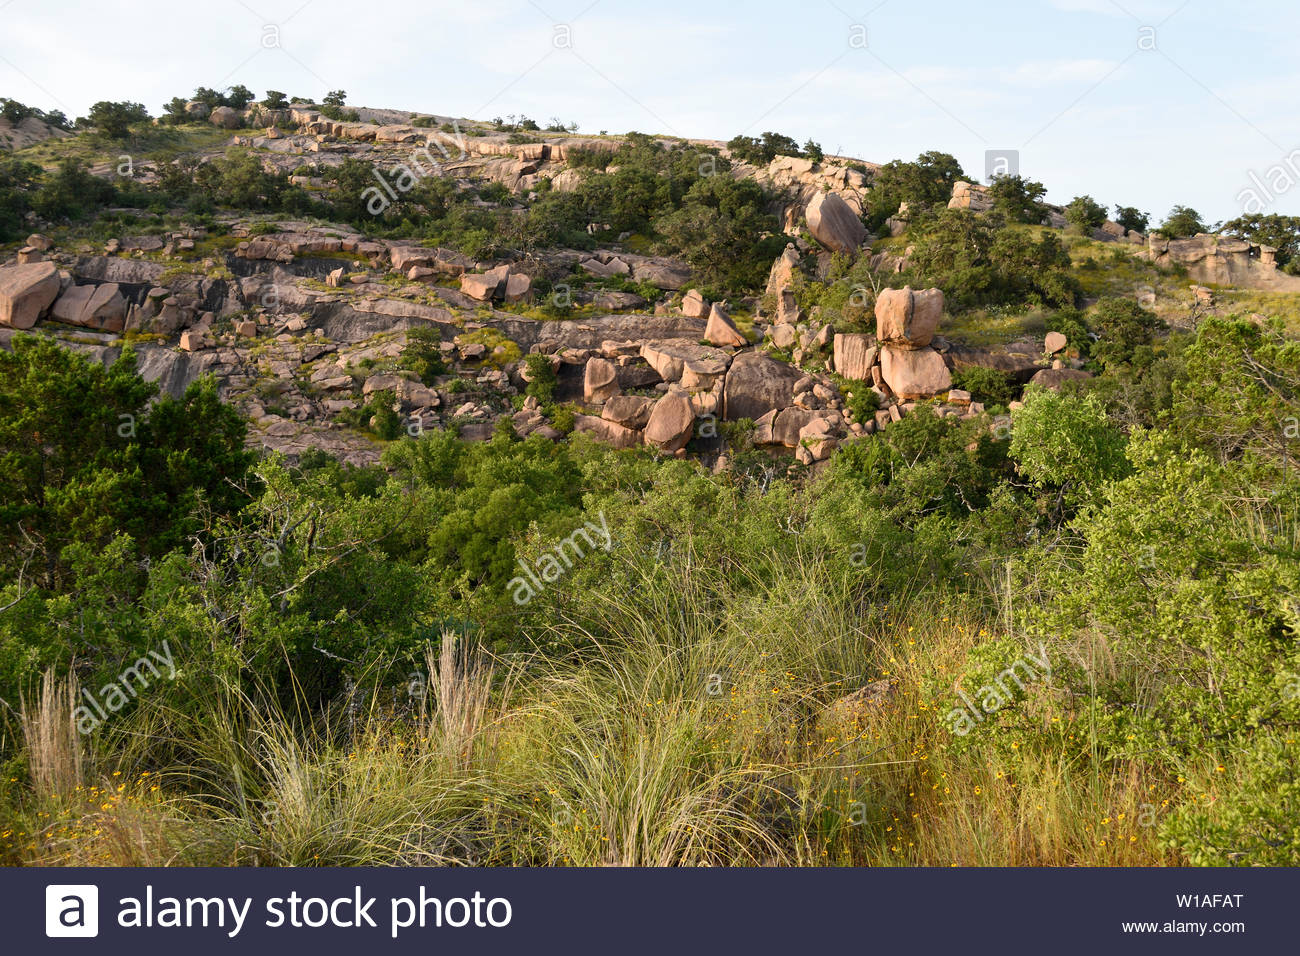 Texas Topography. Topographical relief in the Texas Hill Country. Texas Hill Country Topography. Topography of the Llano Uplift at Enchanted Rock. - Stock Image